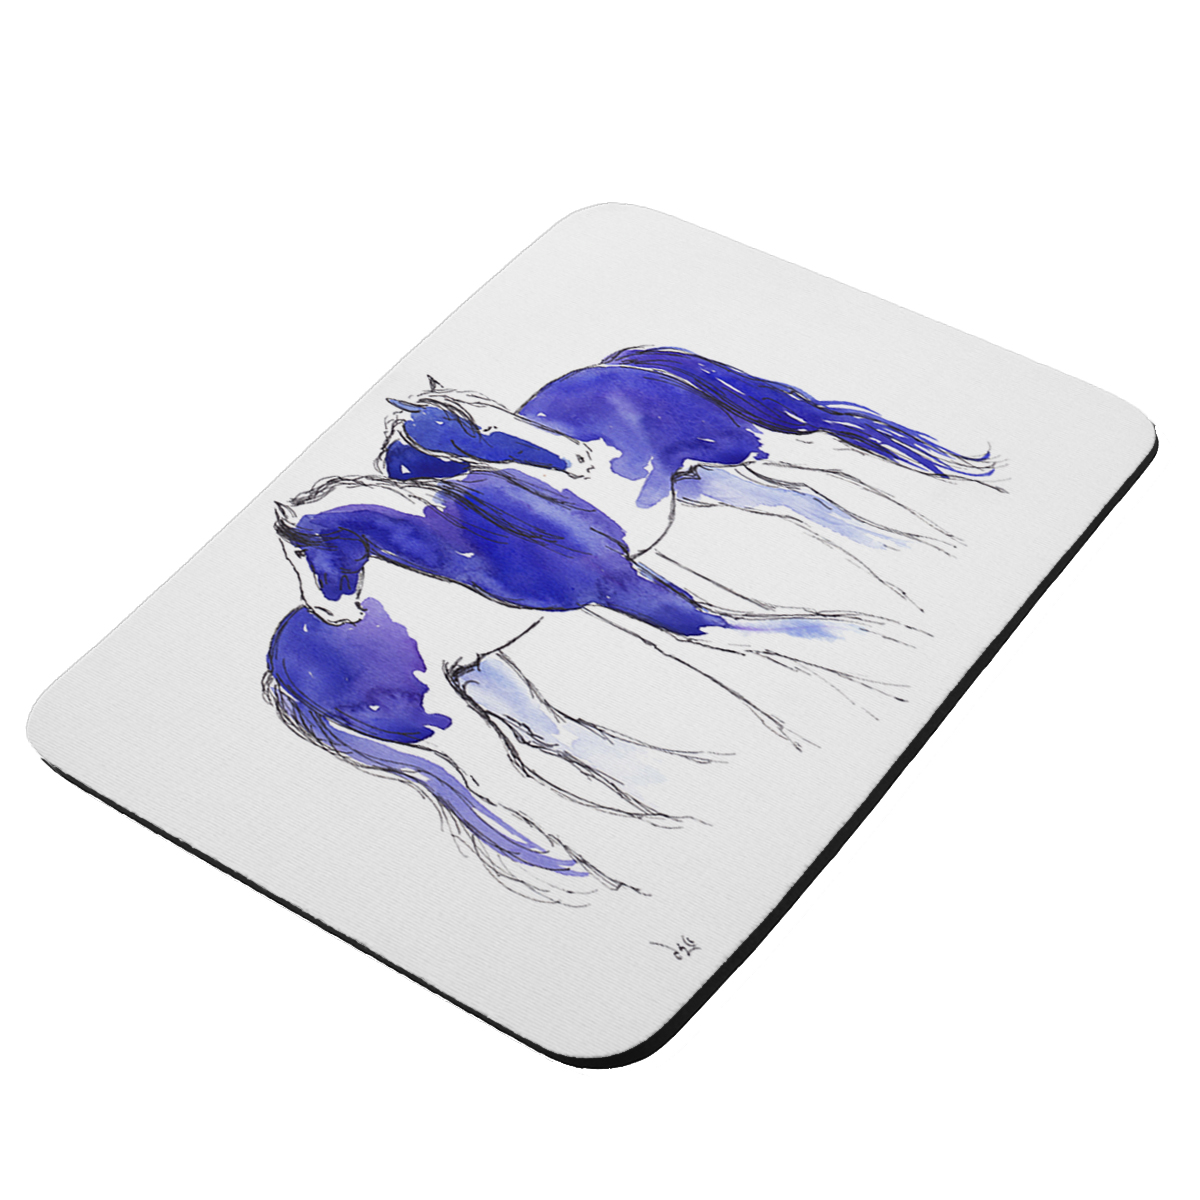 Piebald Gypsy Cobs in Purple and Blue Abstract Horse Art by Denise Every - KuzmarK Mousepad / Hot Pad / Trivet